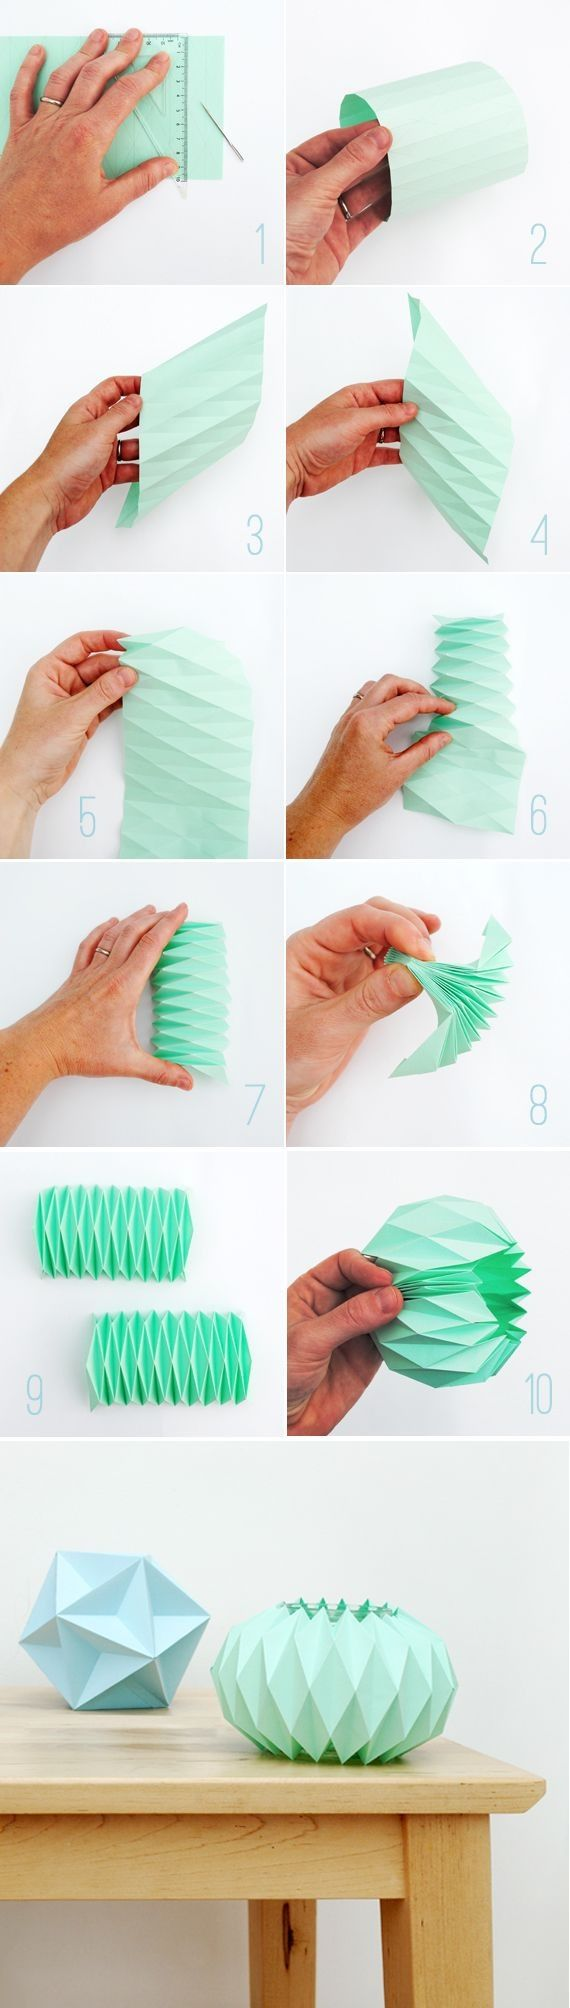 Bored? Make a lampshade! #diy #origami #lampshade